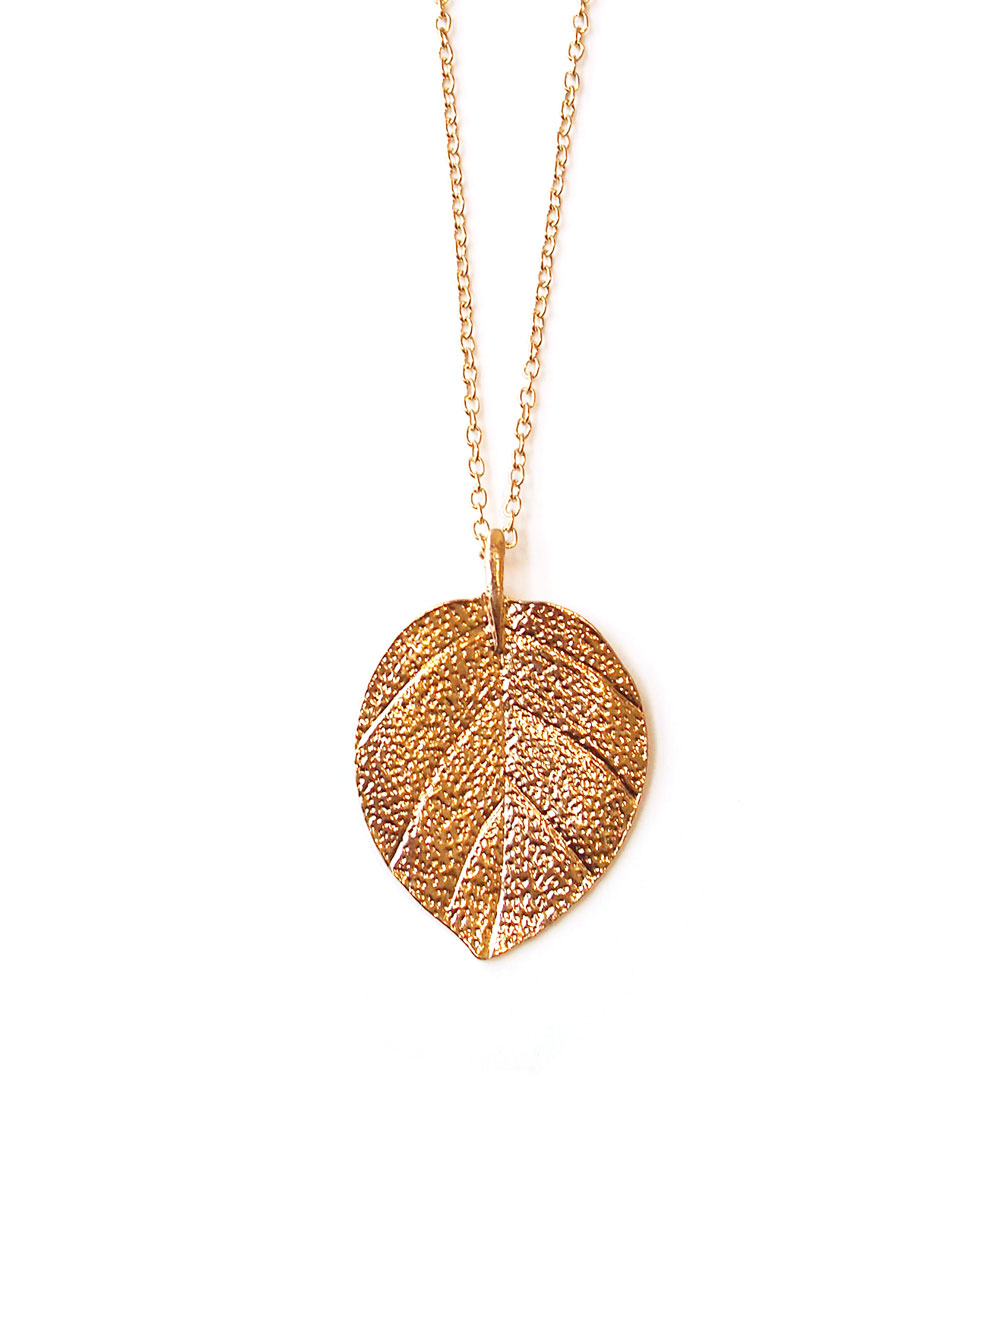 pend jewellery london gold leaf road golden yellow product luxury pendant